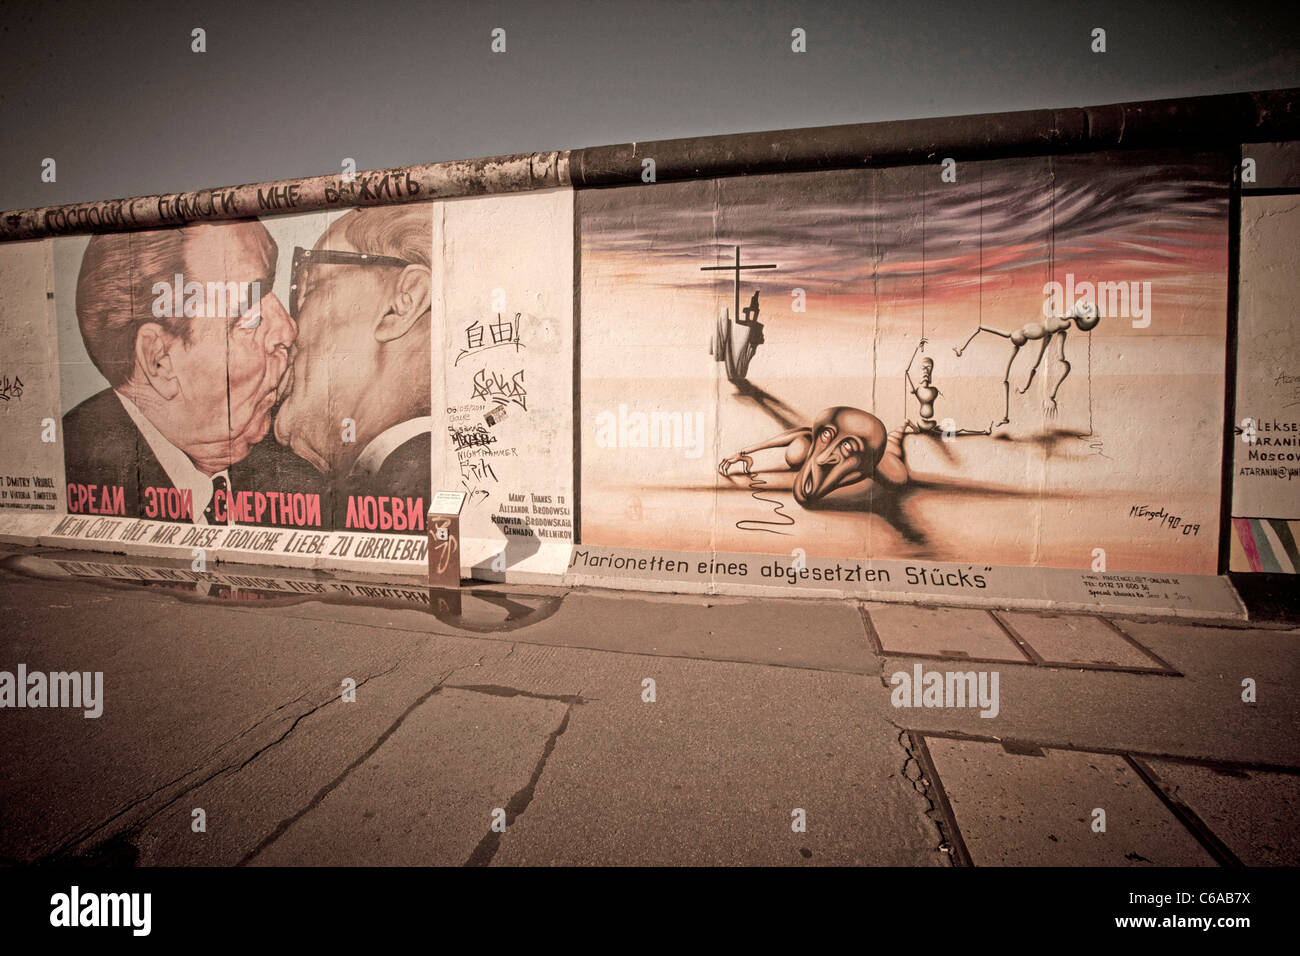 Repainted wall painting at East Side Gallery, Berlin Wall, Mauer, The kiss, Berlin, Germany - Stock Image